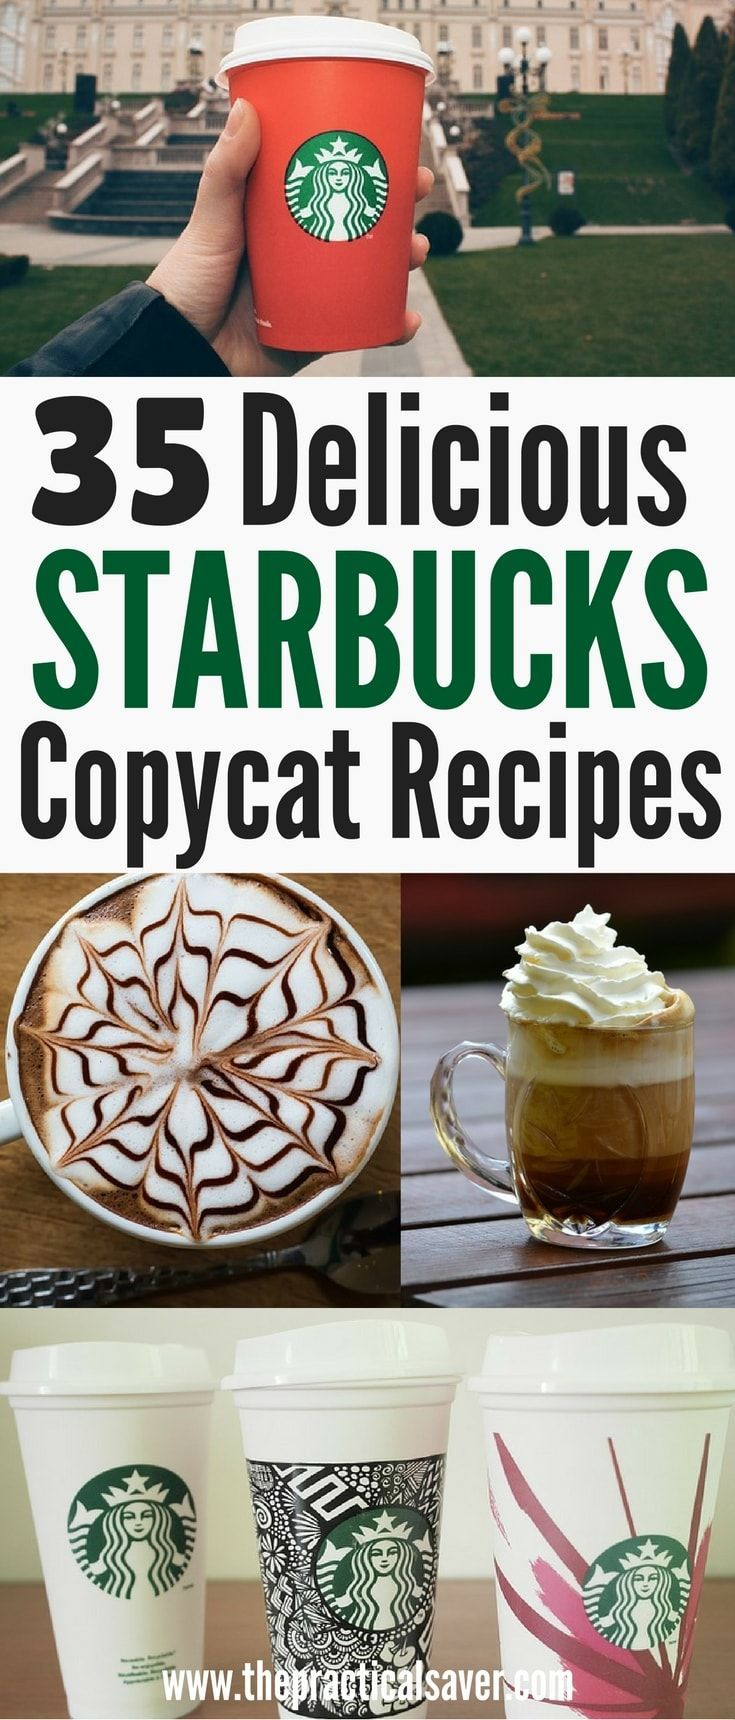 Want Starbucks coffee or drinks but don't want to pay too much? This post lists 35 of the most delicious, easy-to-make Starbucks copycat recipes. Making your own coffee or drinks will save you money. I know it saves my wife and I a lot of money. With few ingredients that you may already have, you can make your favorite drinks without paying a lot. Frugality at its best. #saving #investment #lyummy